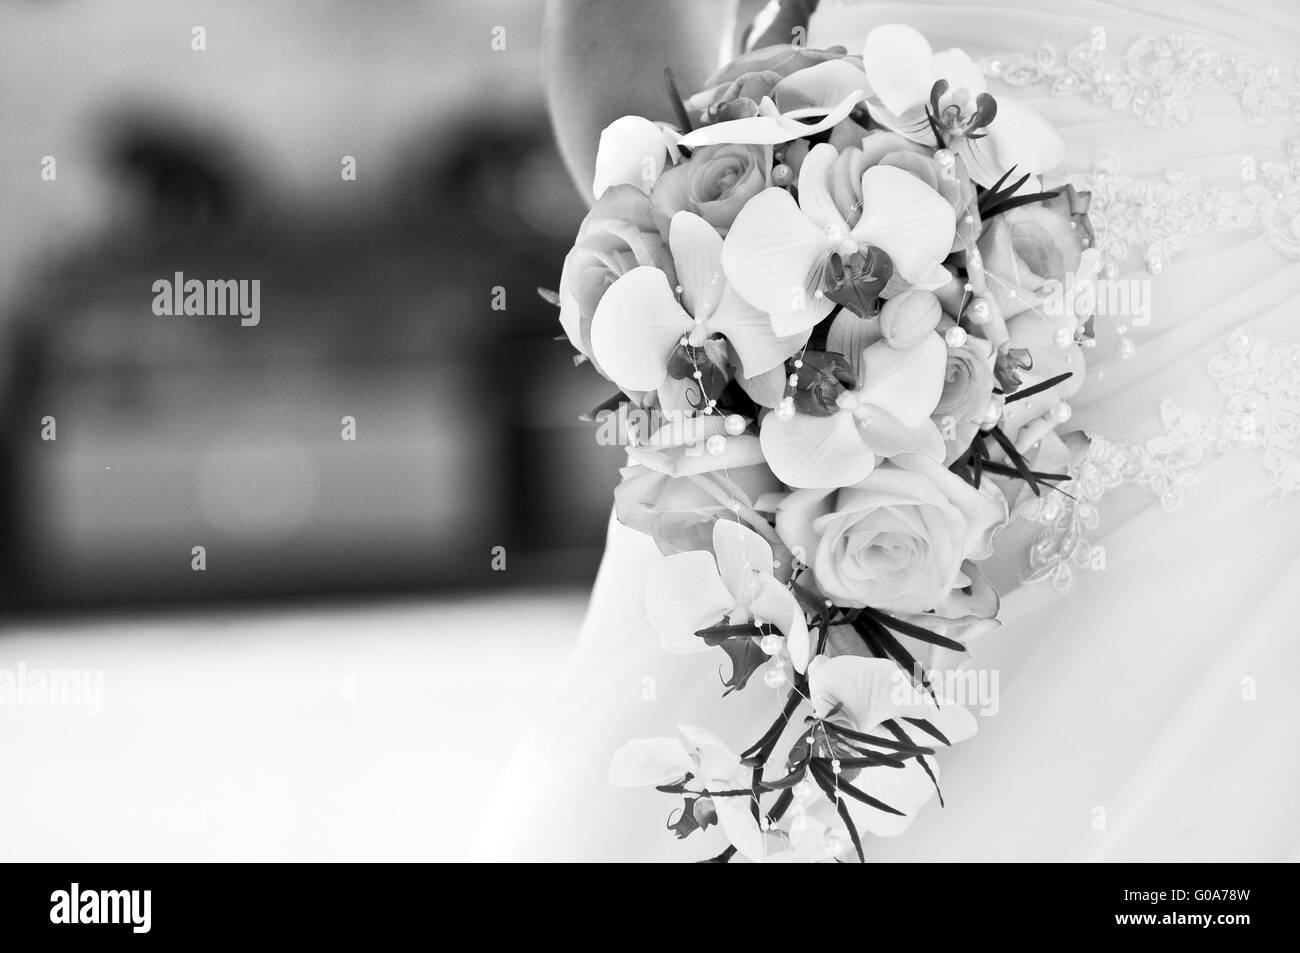 bridal flowers Stock Photo